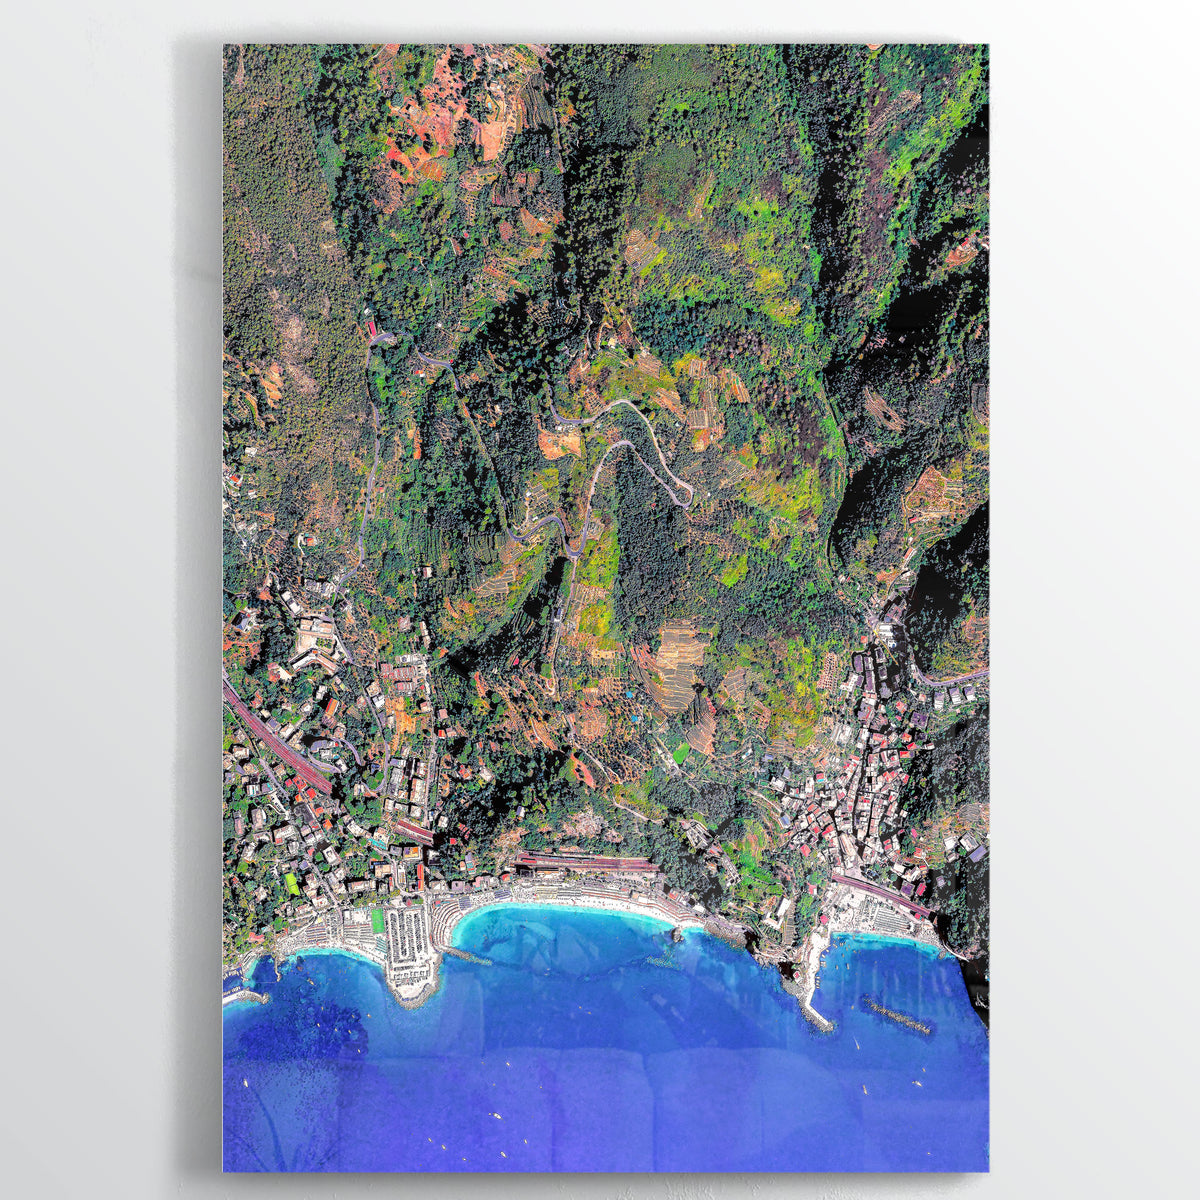 Cinque Terre Earth Photography - Floating Acrylic Art - Point Two Design